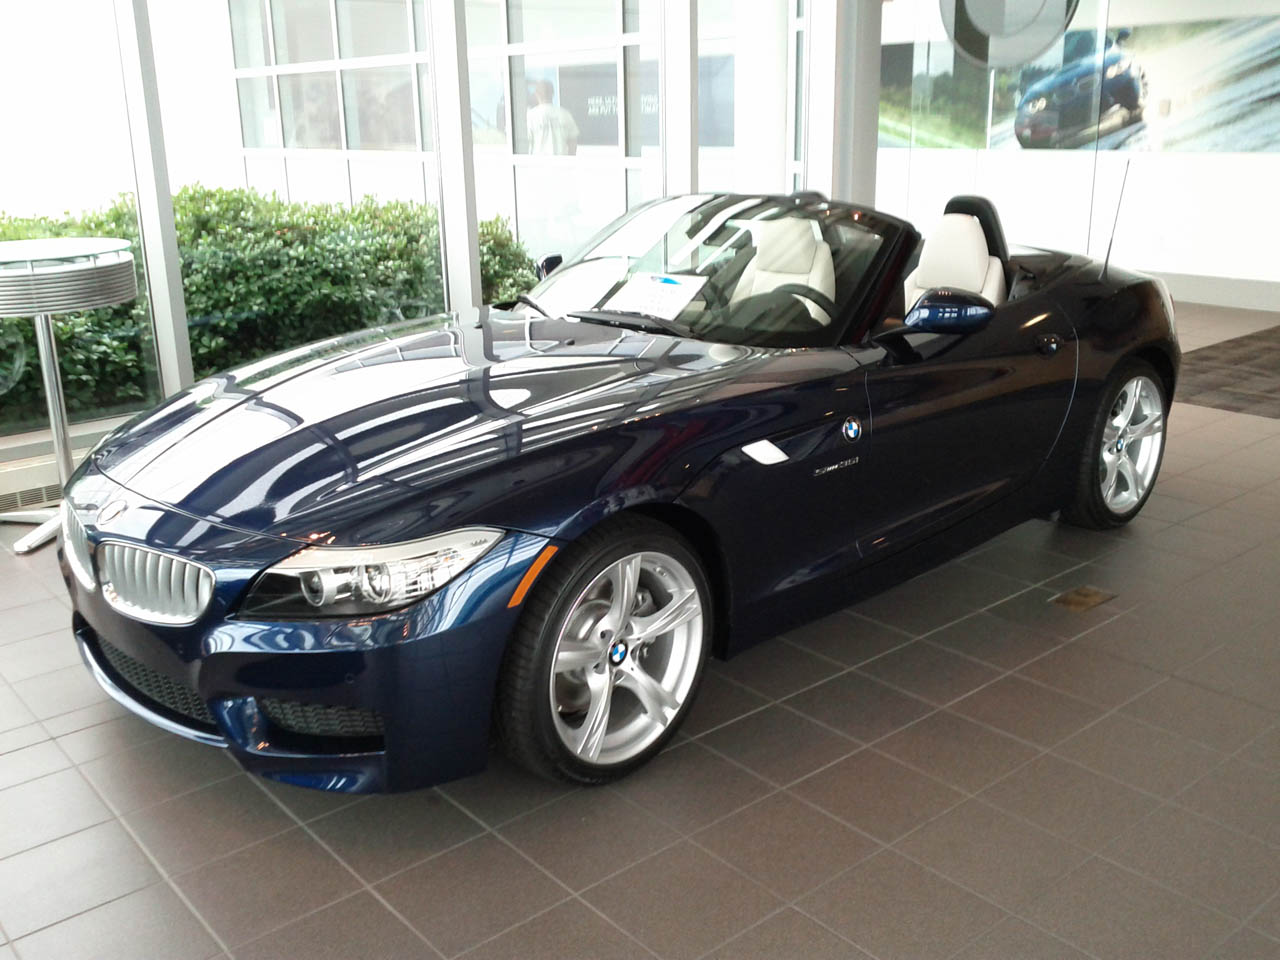 2011 Deep Sea Blue Metallic BMW Z4 Sdrive 35i picture, mods, upgrades